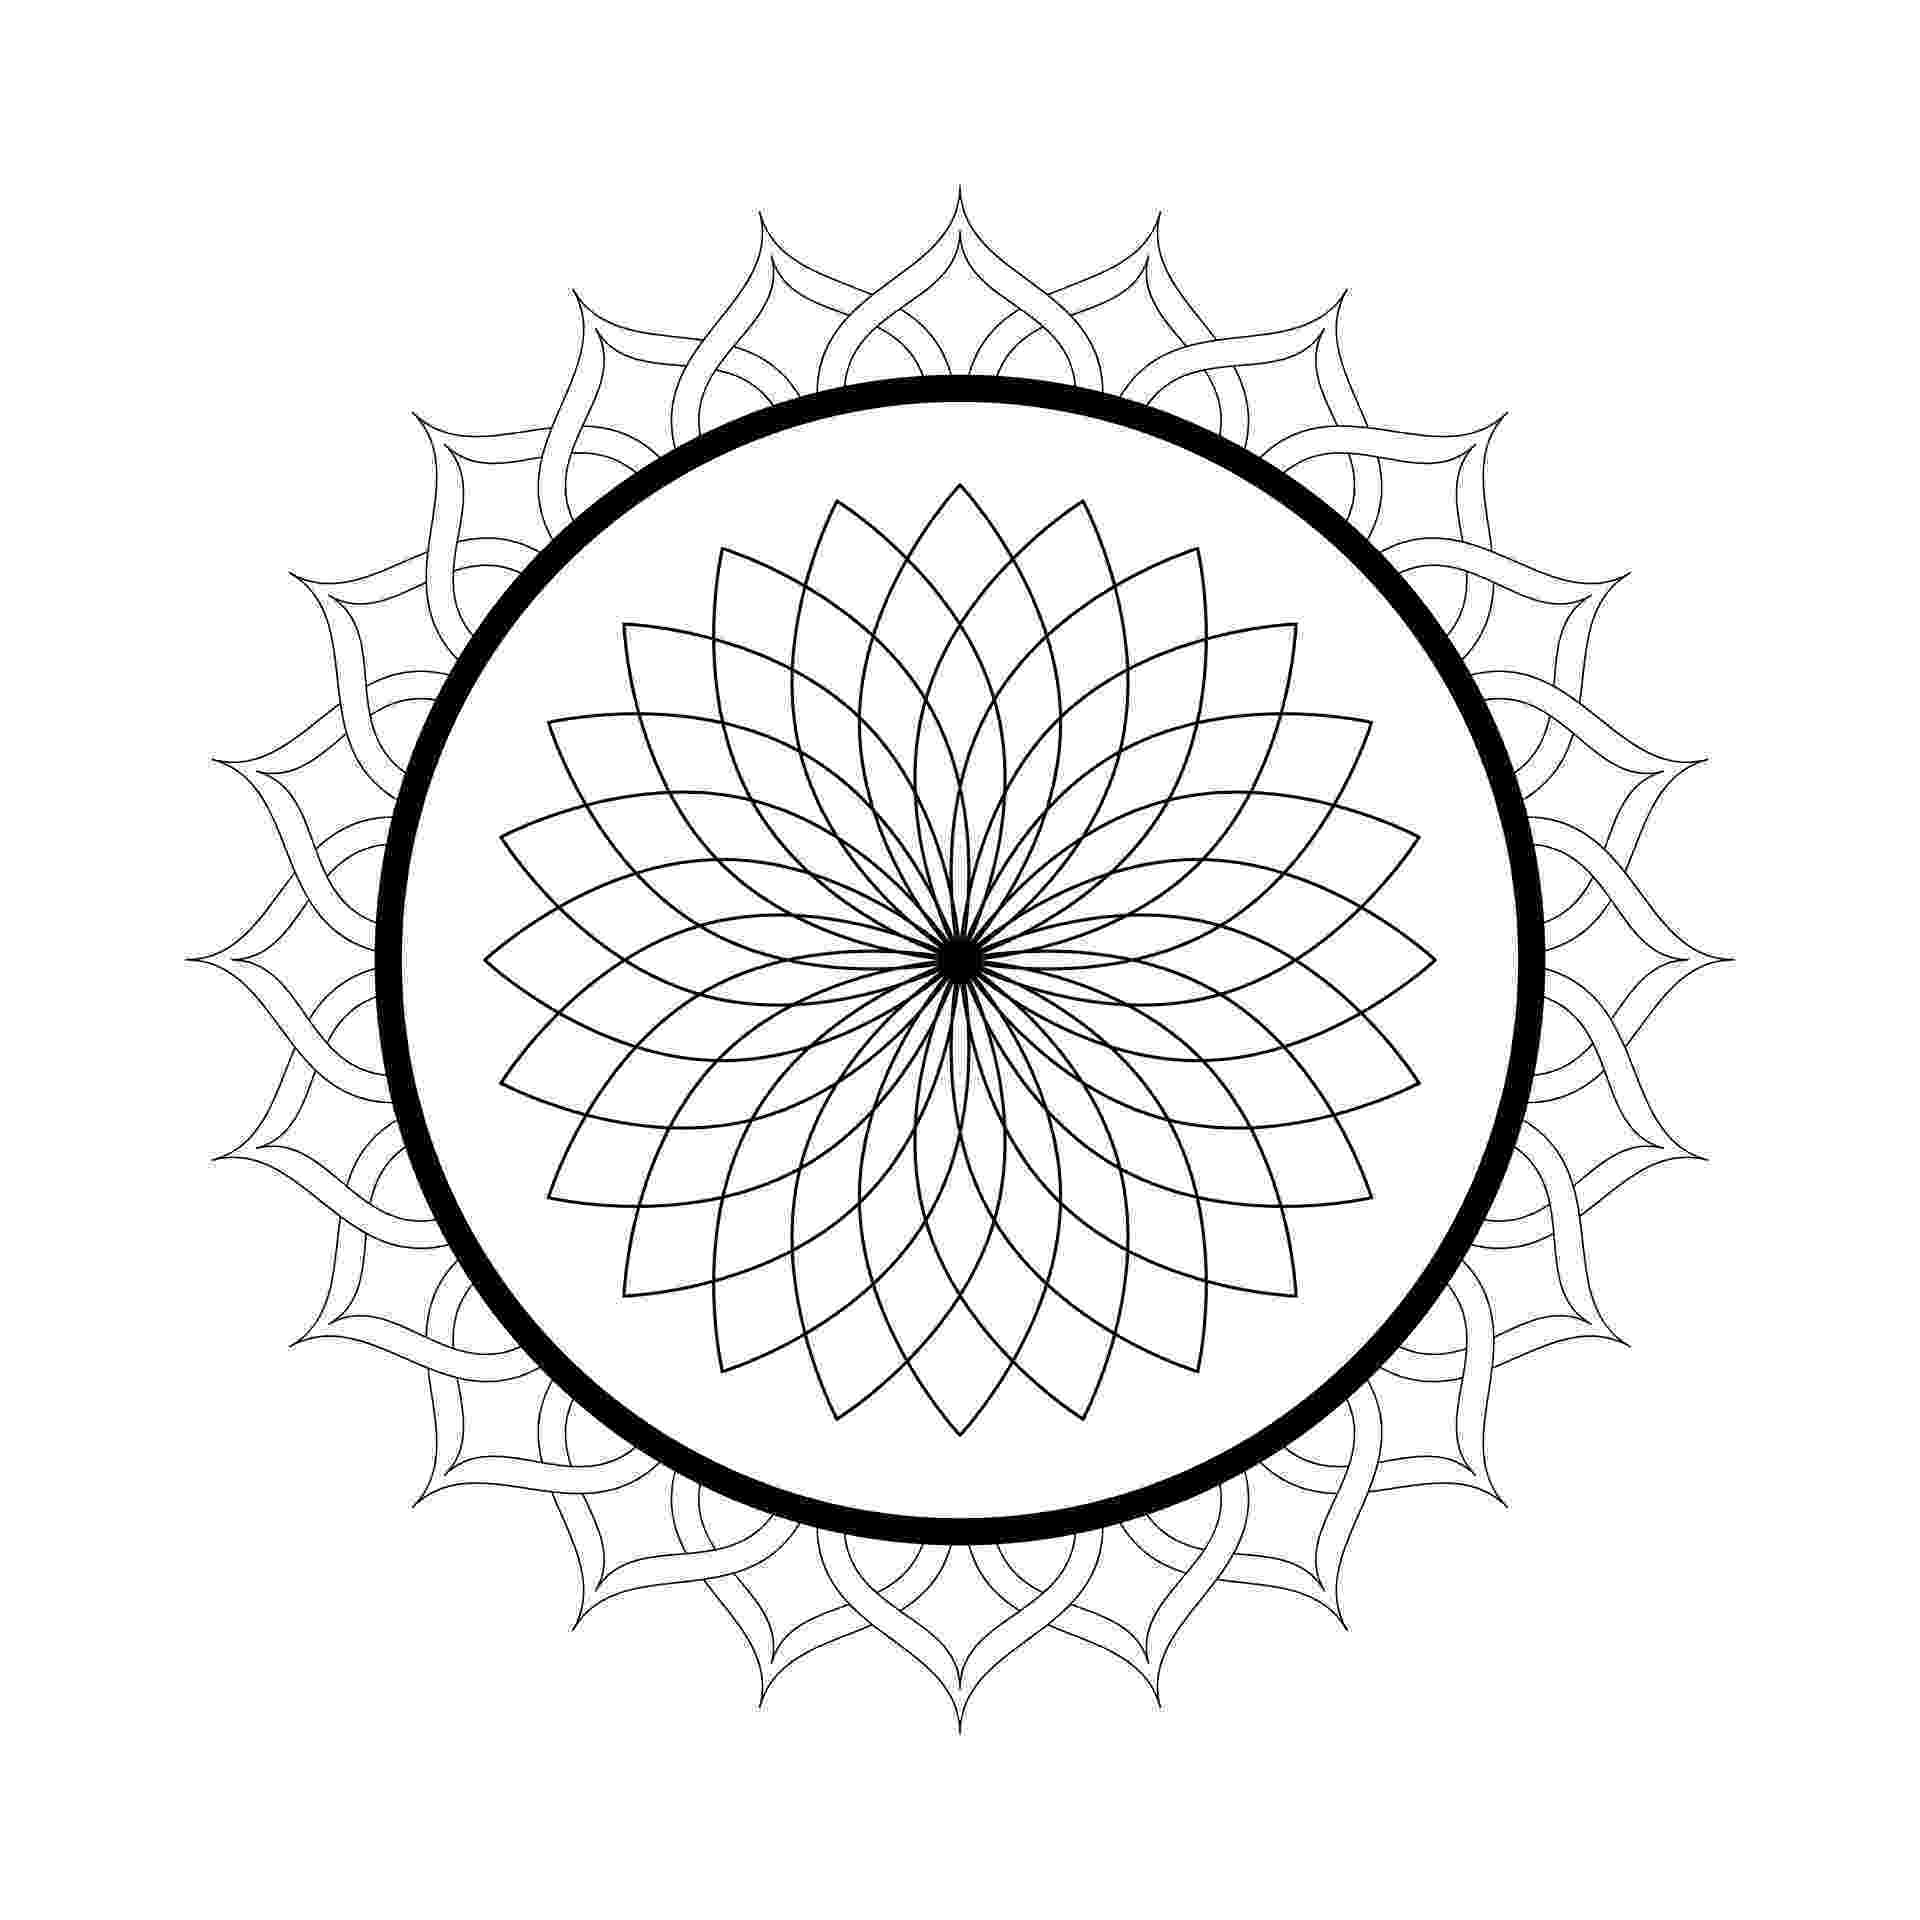 printable mandala coloring pages for adults these printable abstract coloring pages relieve stress and adults pages mandala for printable coloring